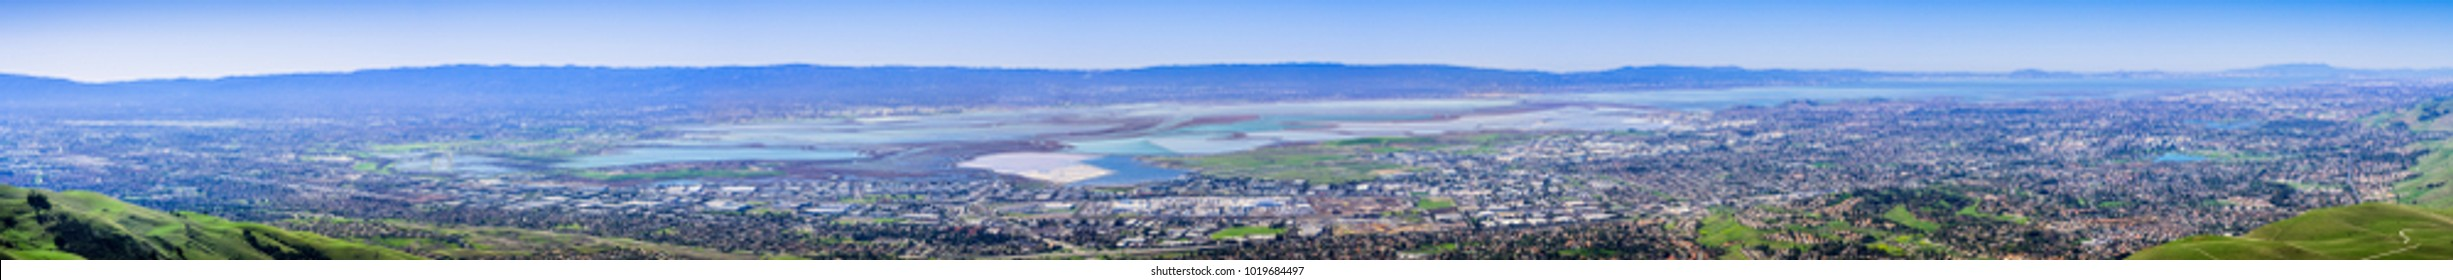 Panorama view of the cities on the shoreline of south and east San Francisco bay area; colorful salt ponds in the background; Silicon Valley, California